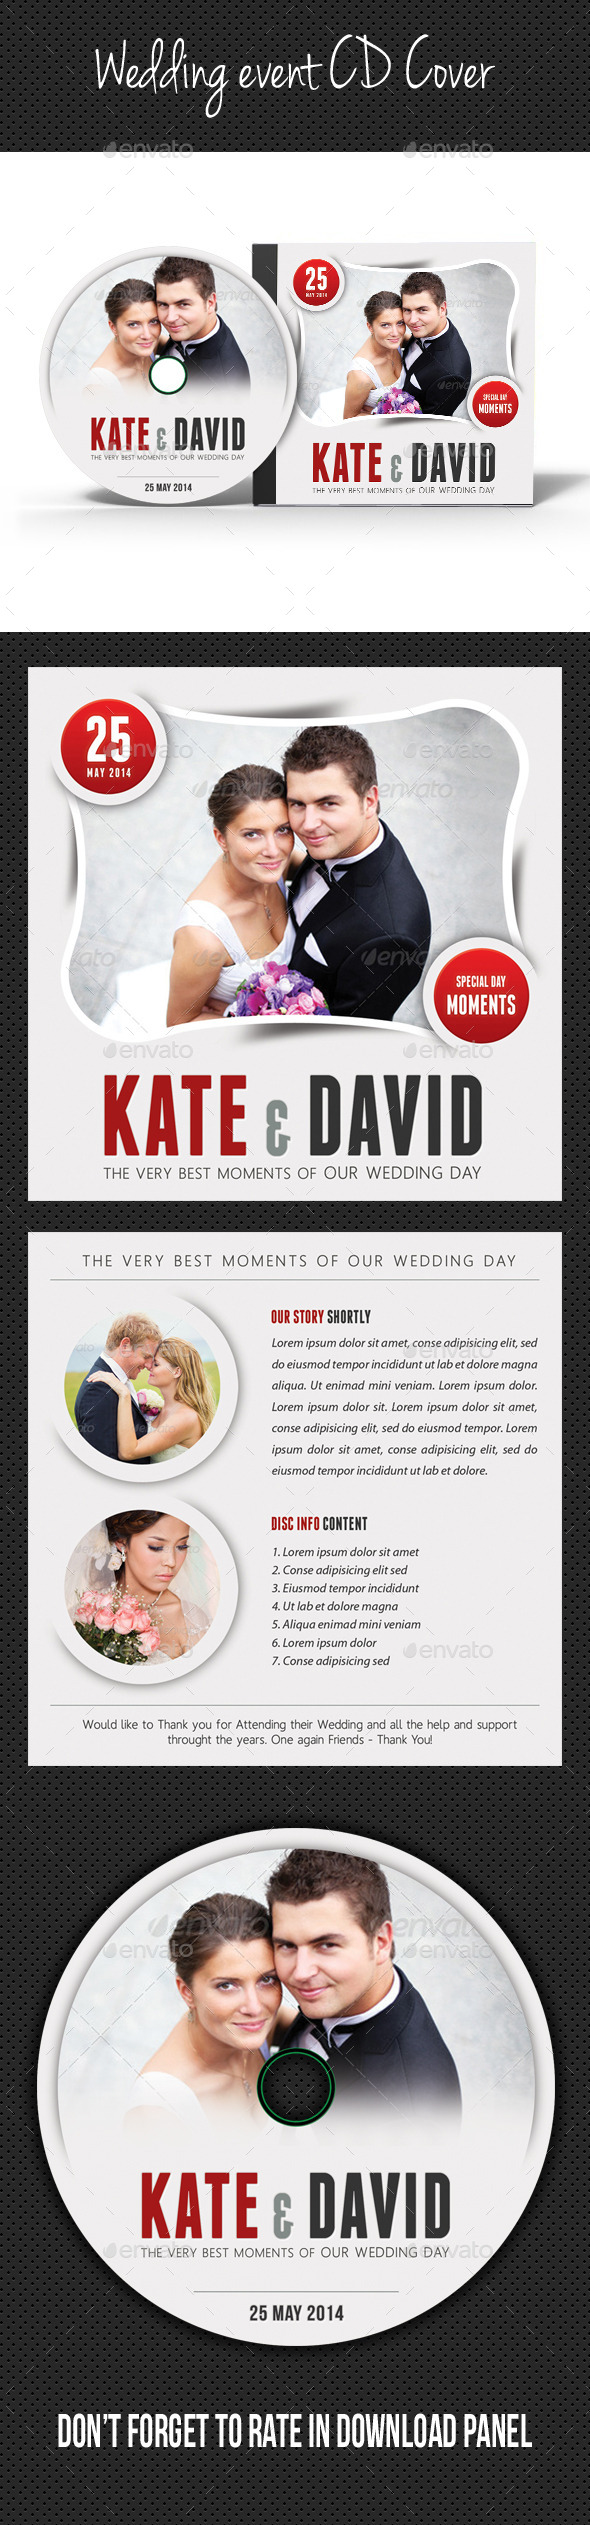 GraphicRiver Wedding Event CD Cover V02 9099141